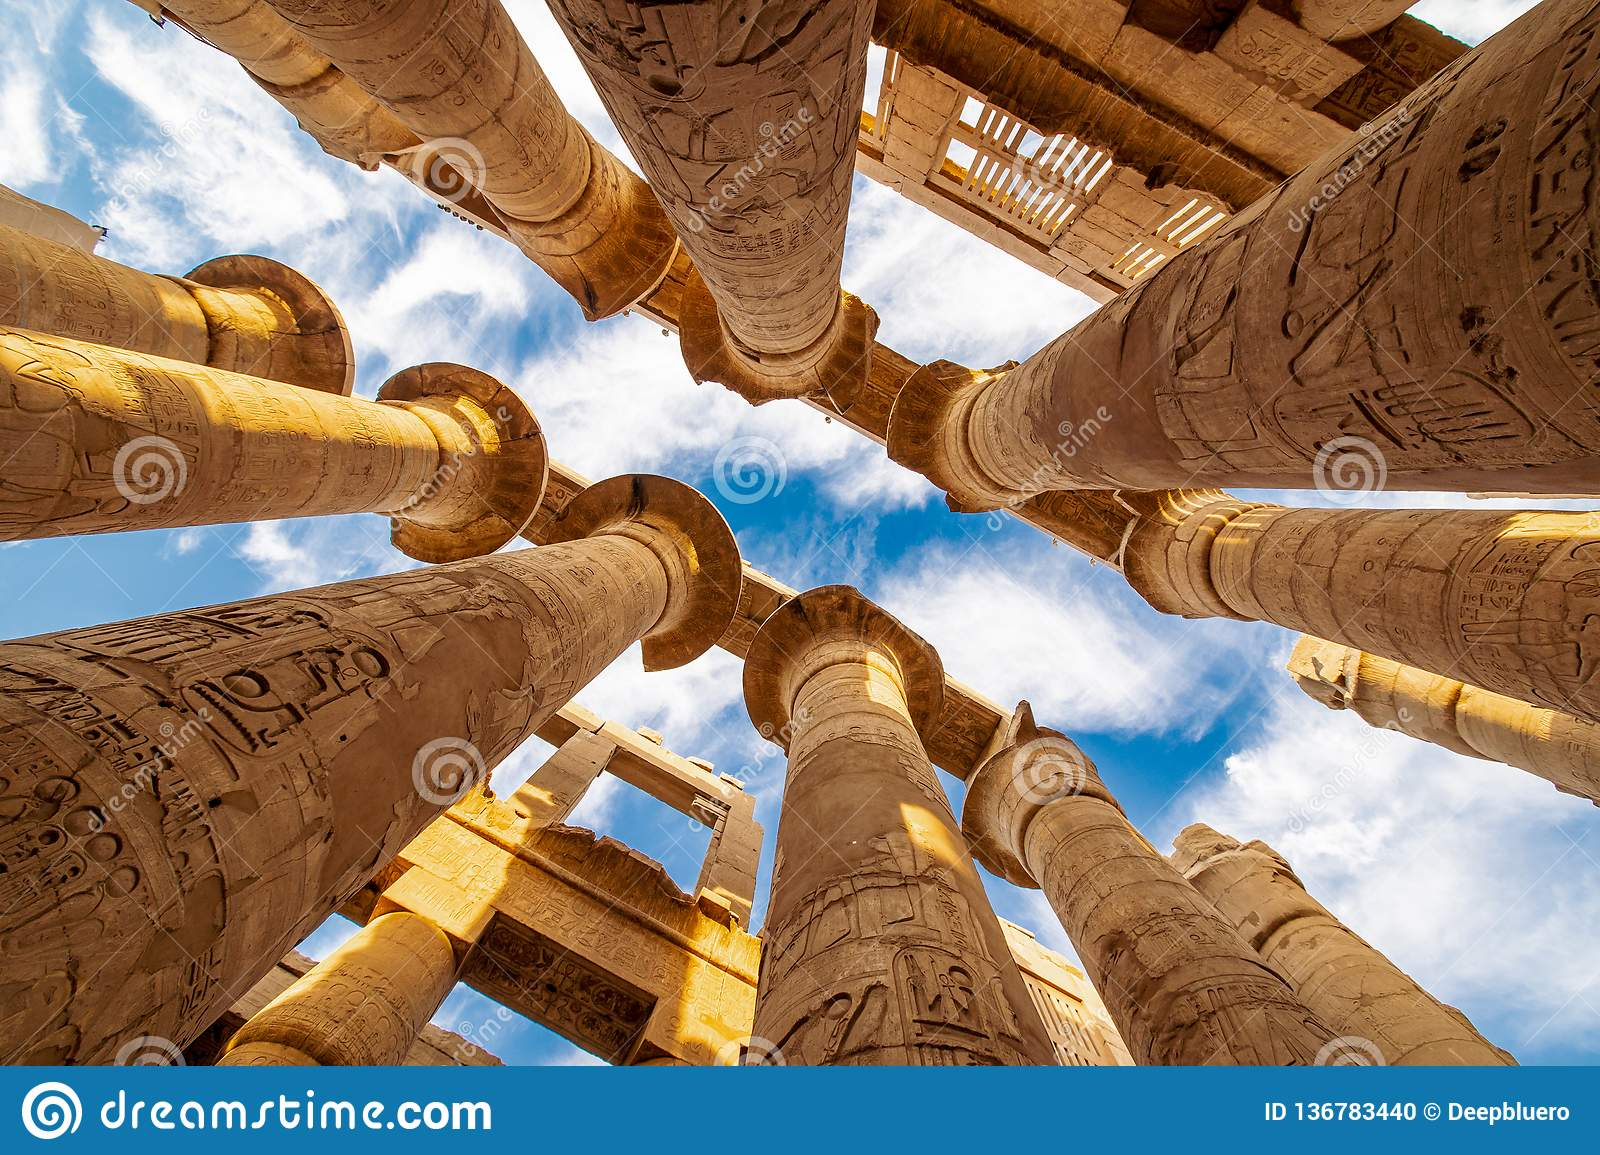 Karnak Hypostyle hall columns in the Temple at Luxor Thebes